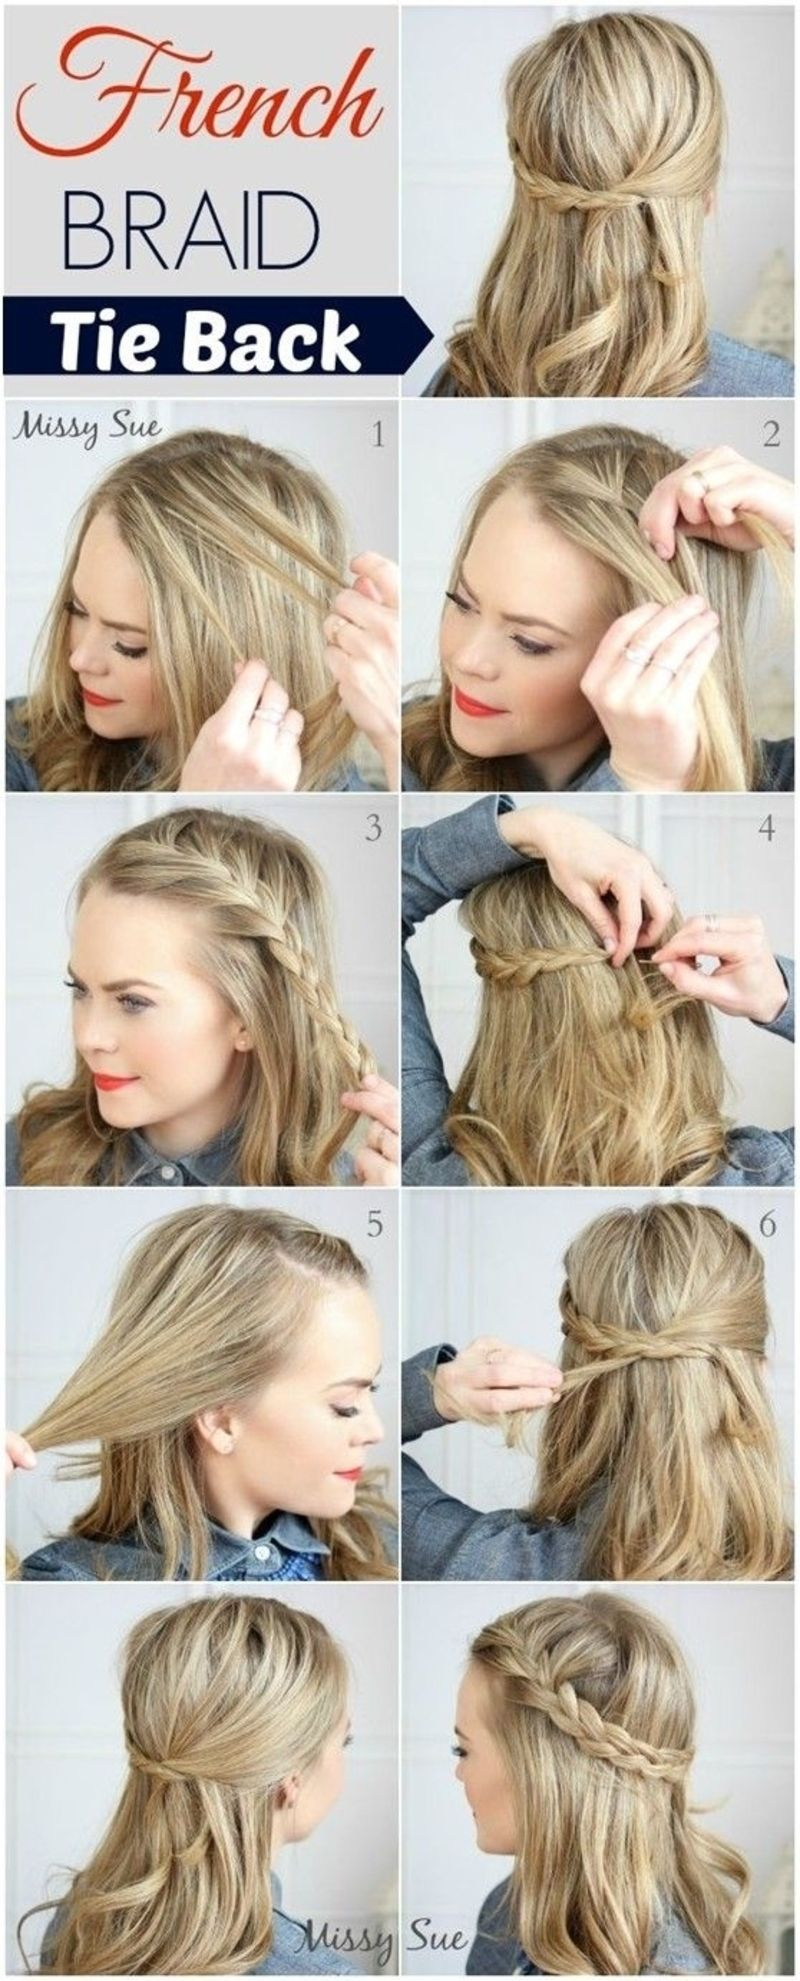 4. 10 #french braid tie back - 43 #fancy braided hairstyle